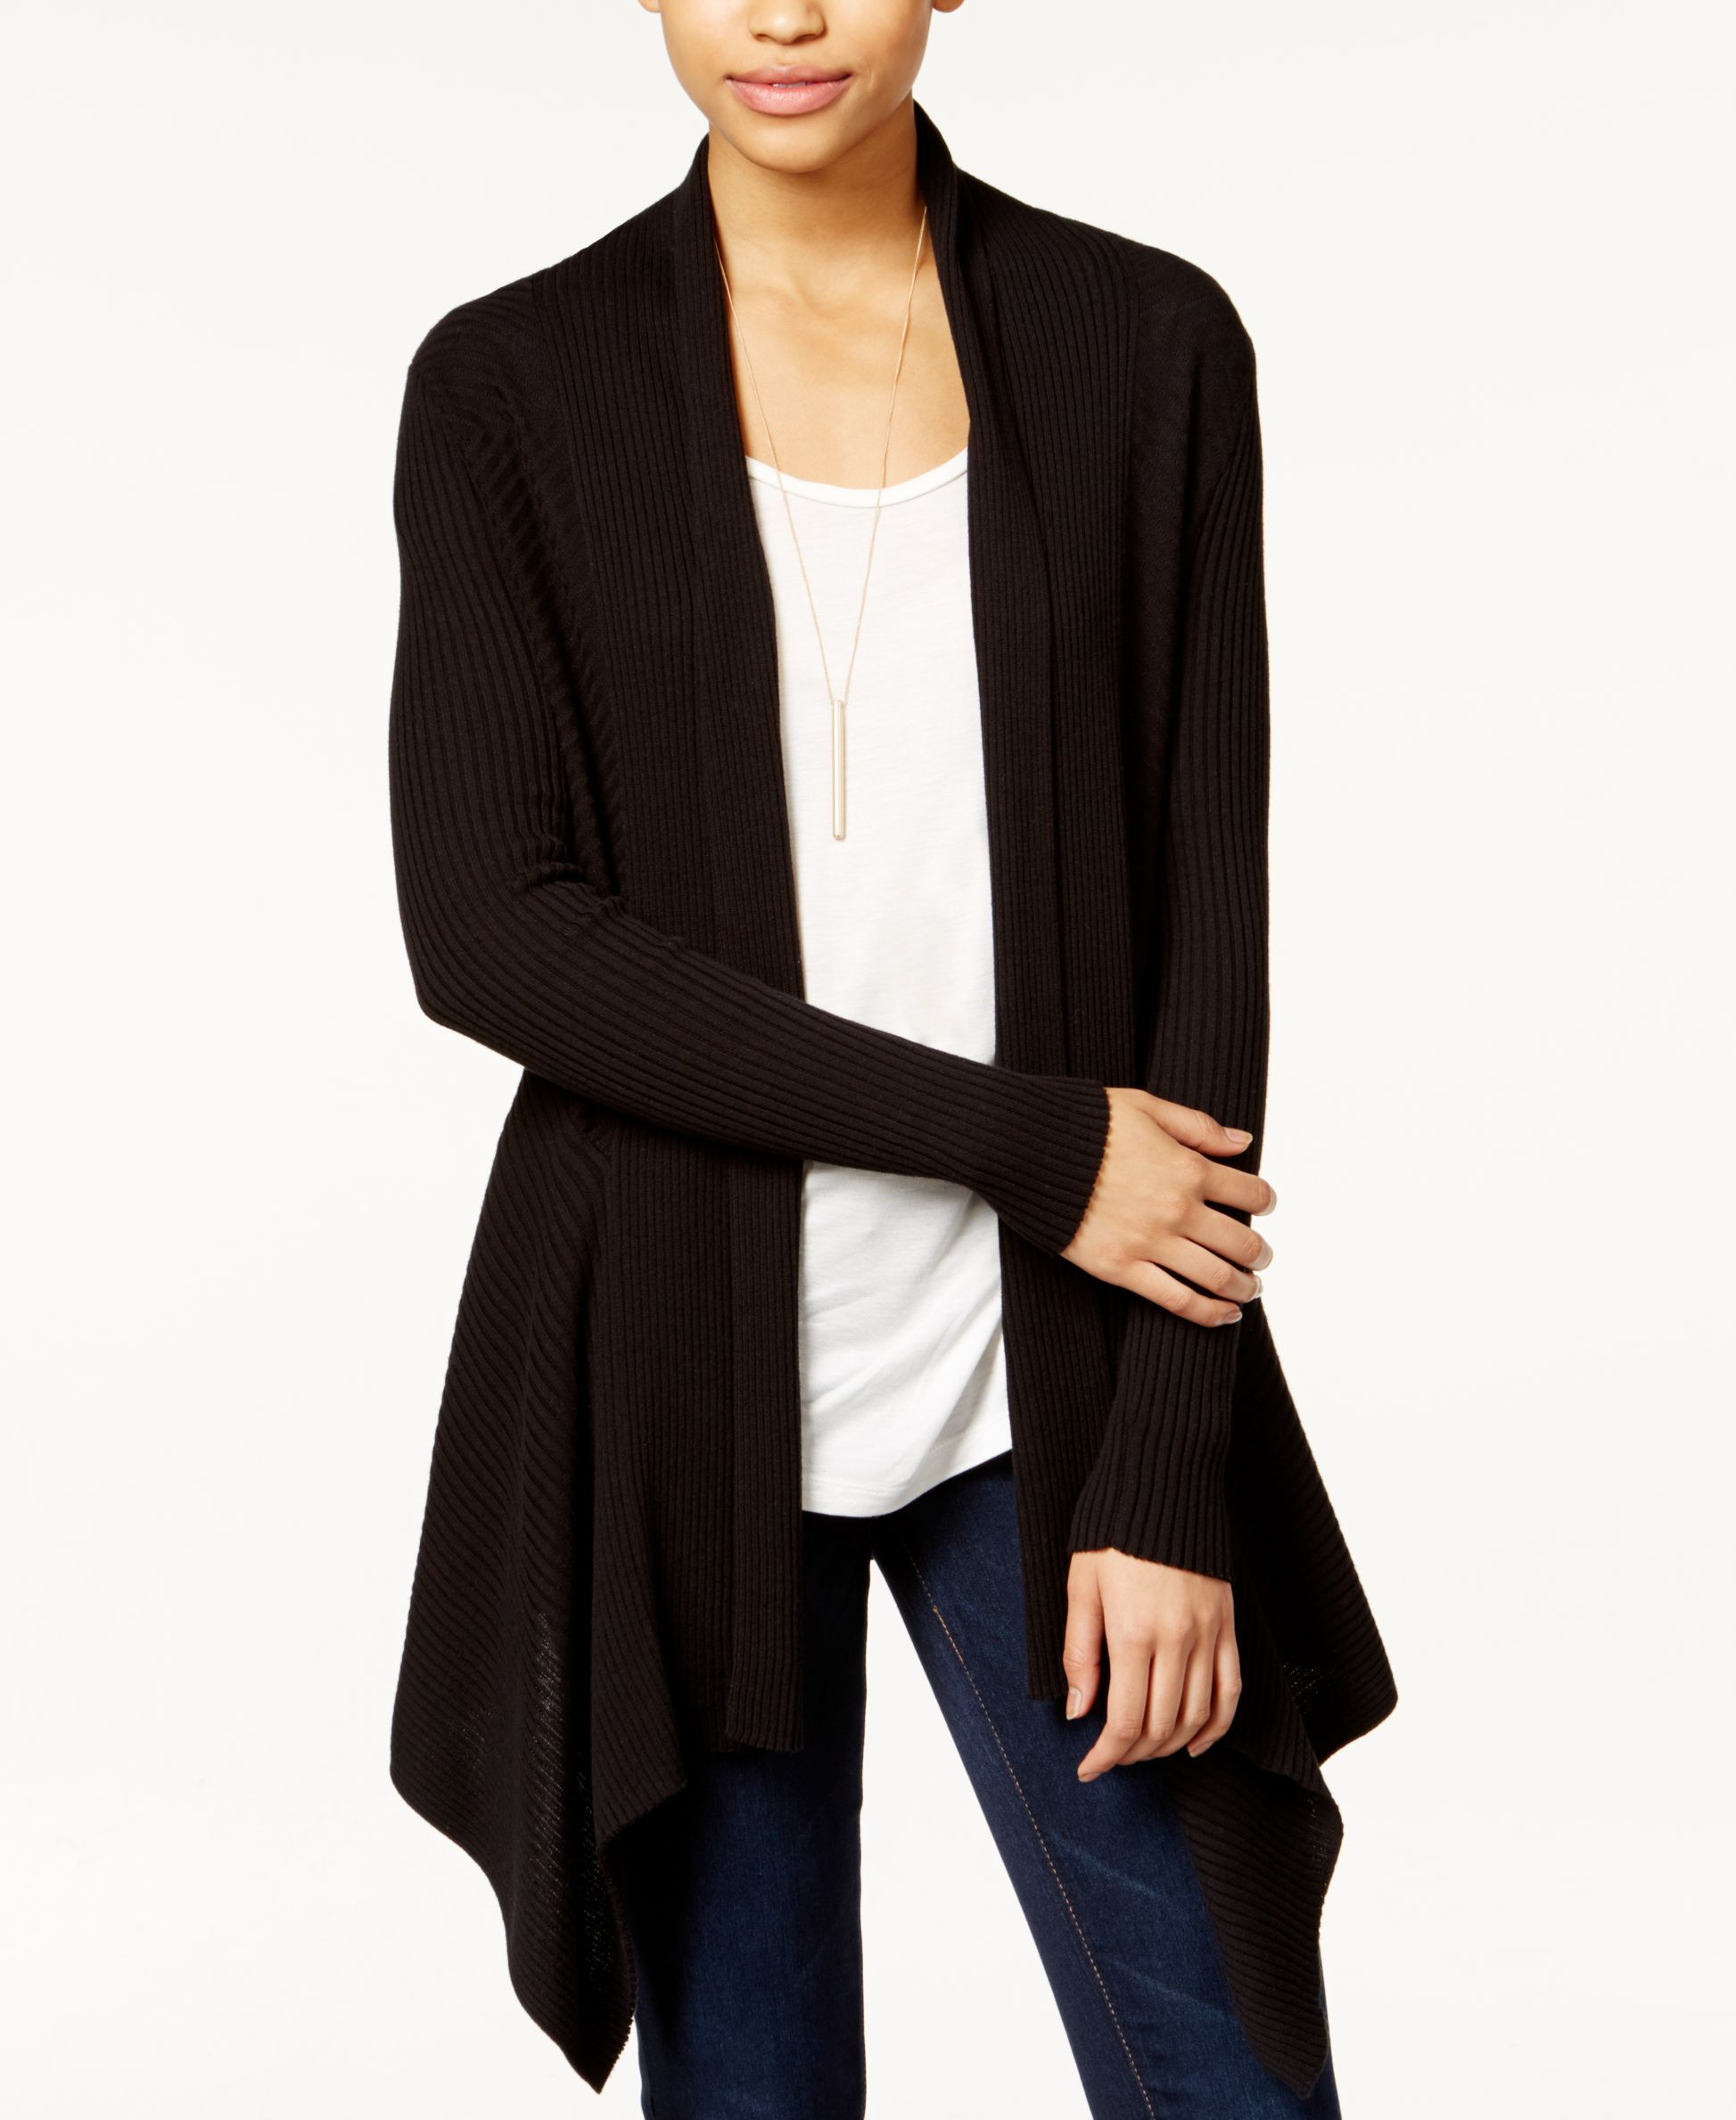 Bar Iii Ribbed Waterfall Cardigan, Only at Macy's | Clothes I own ...